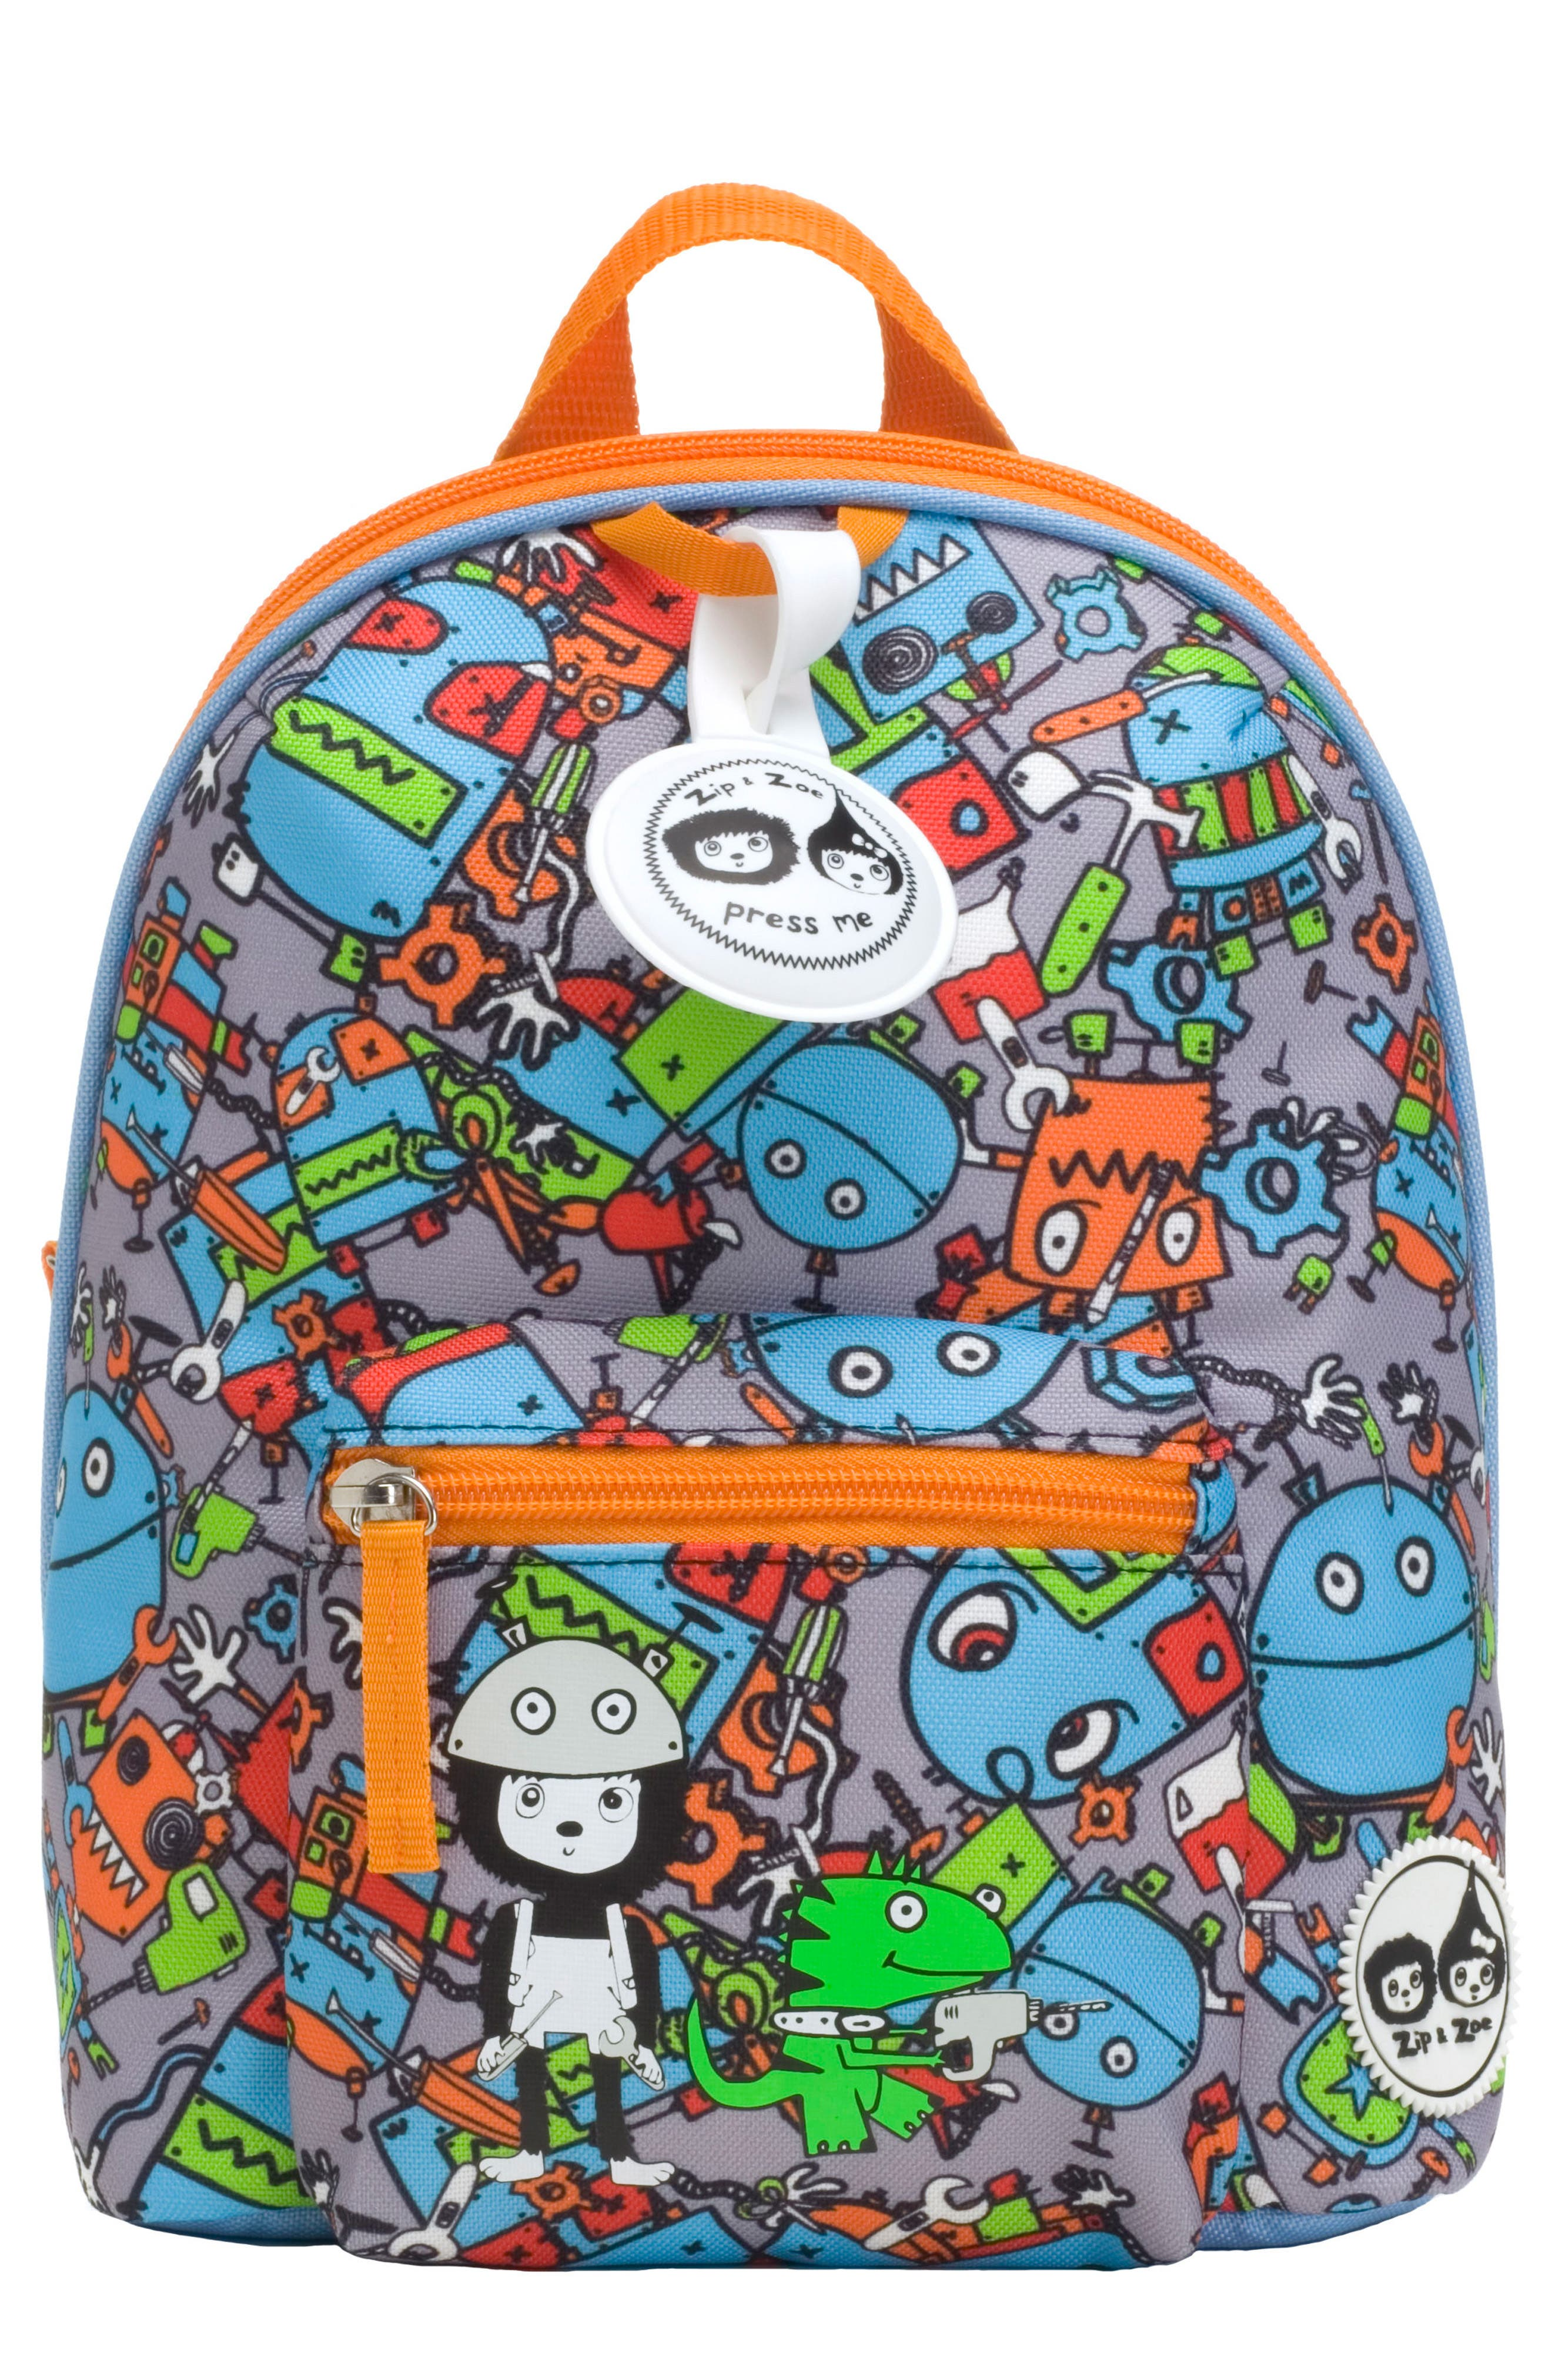 Zip & Zoe Robots Mini Backpack,                             Main thumbnail 1, color,                             ROBOTS